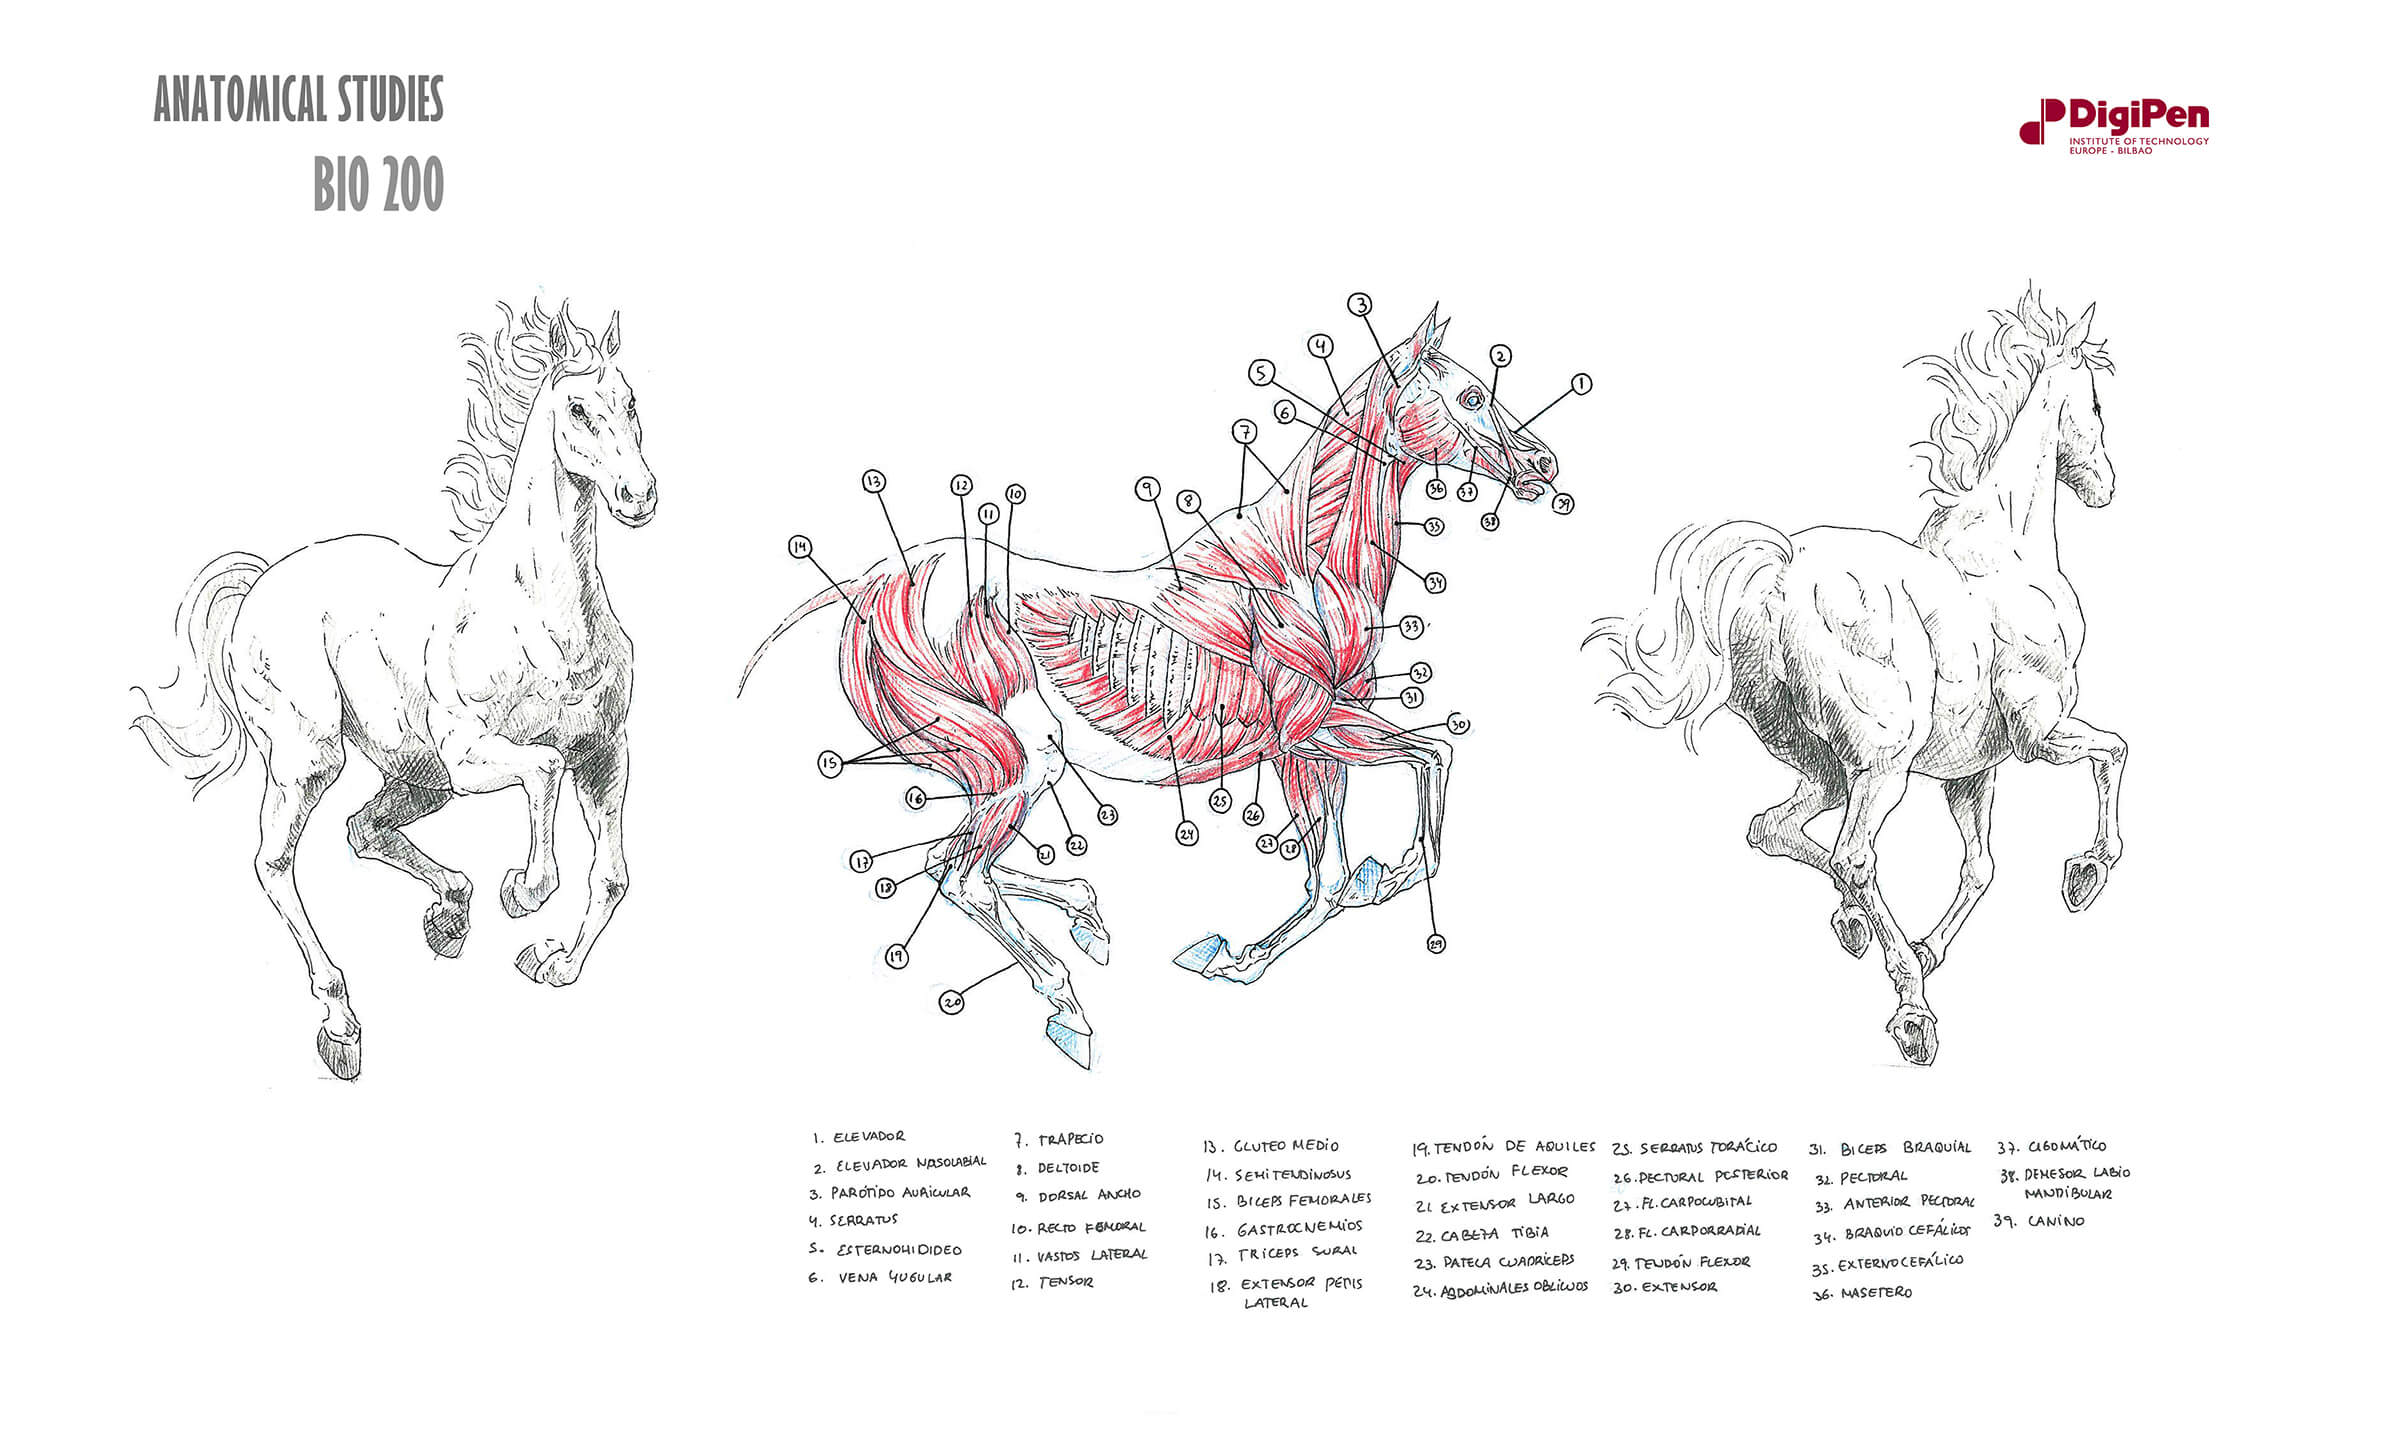 Black-white-and-red anatomical sketches of horse in mid-gallop and cross-section of its muscular system.